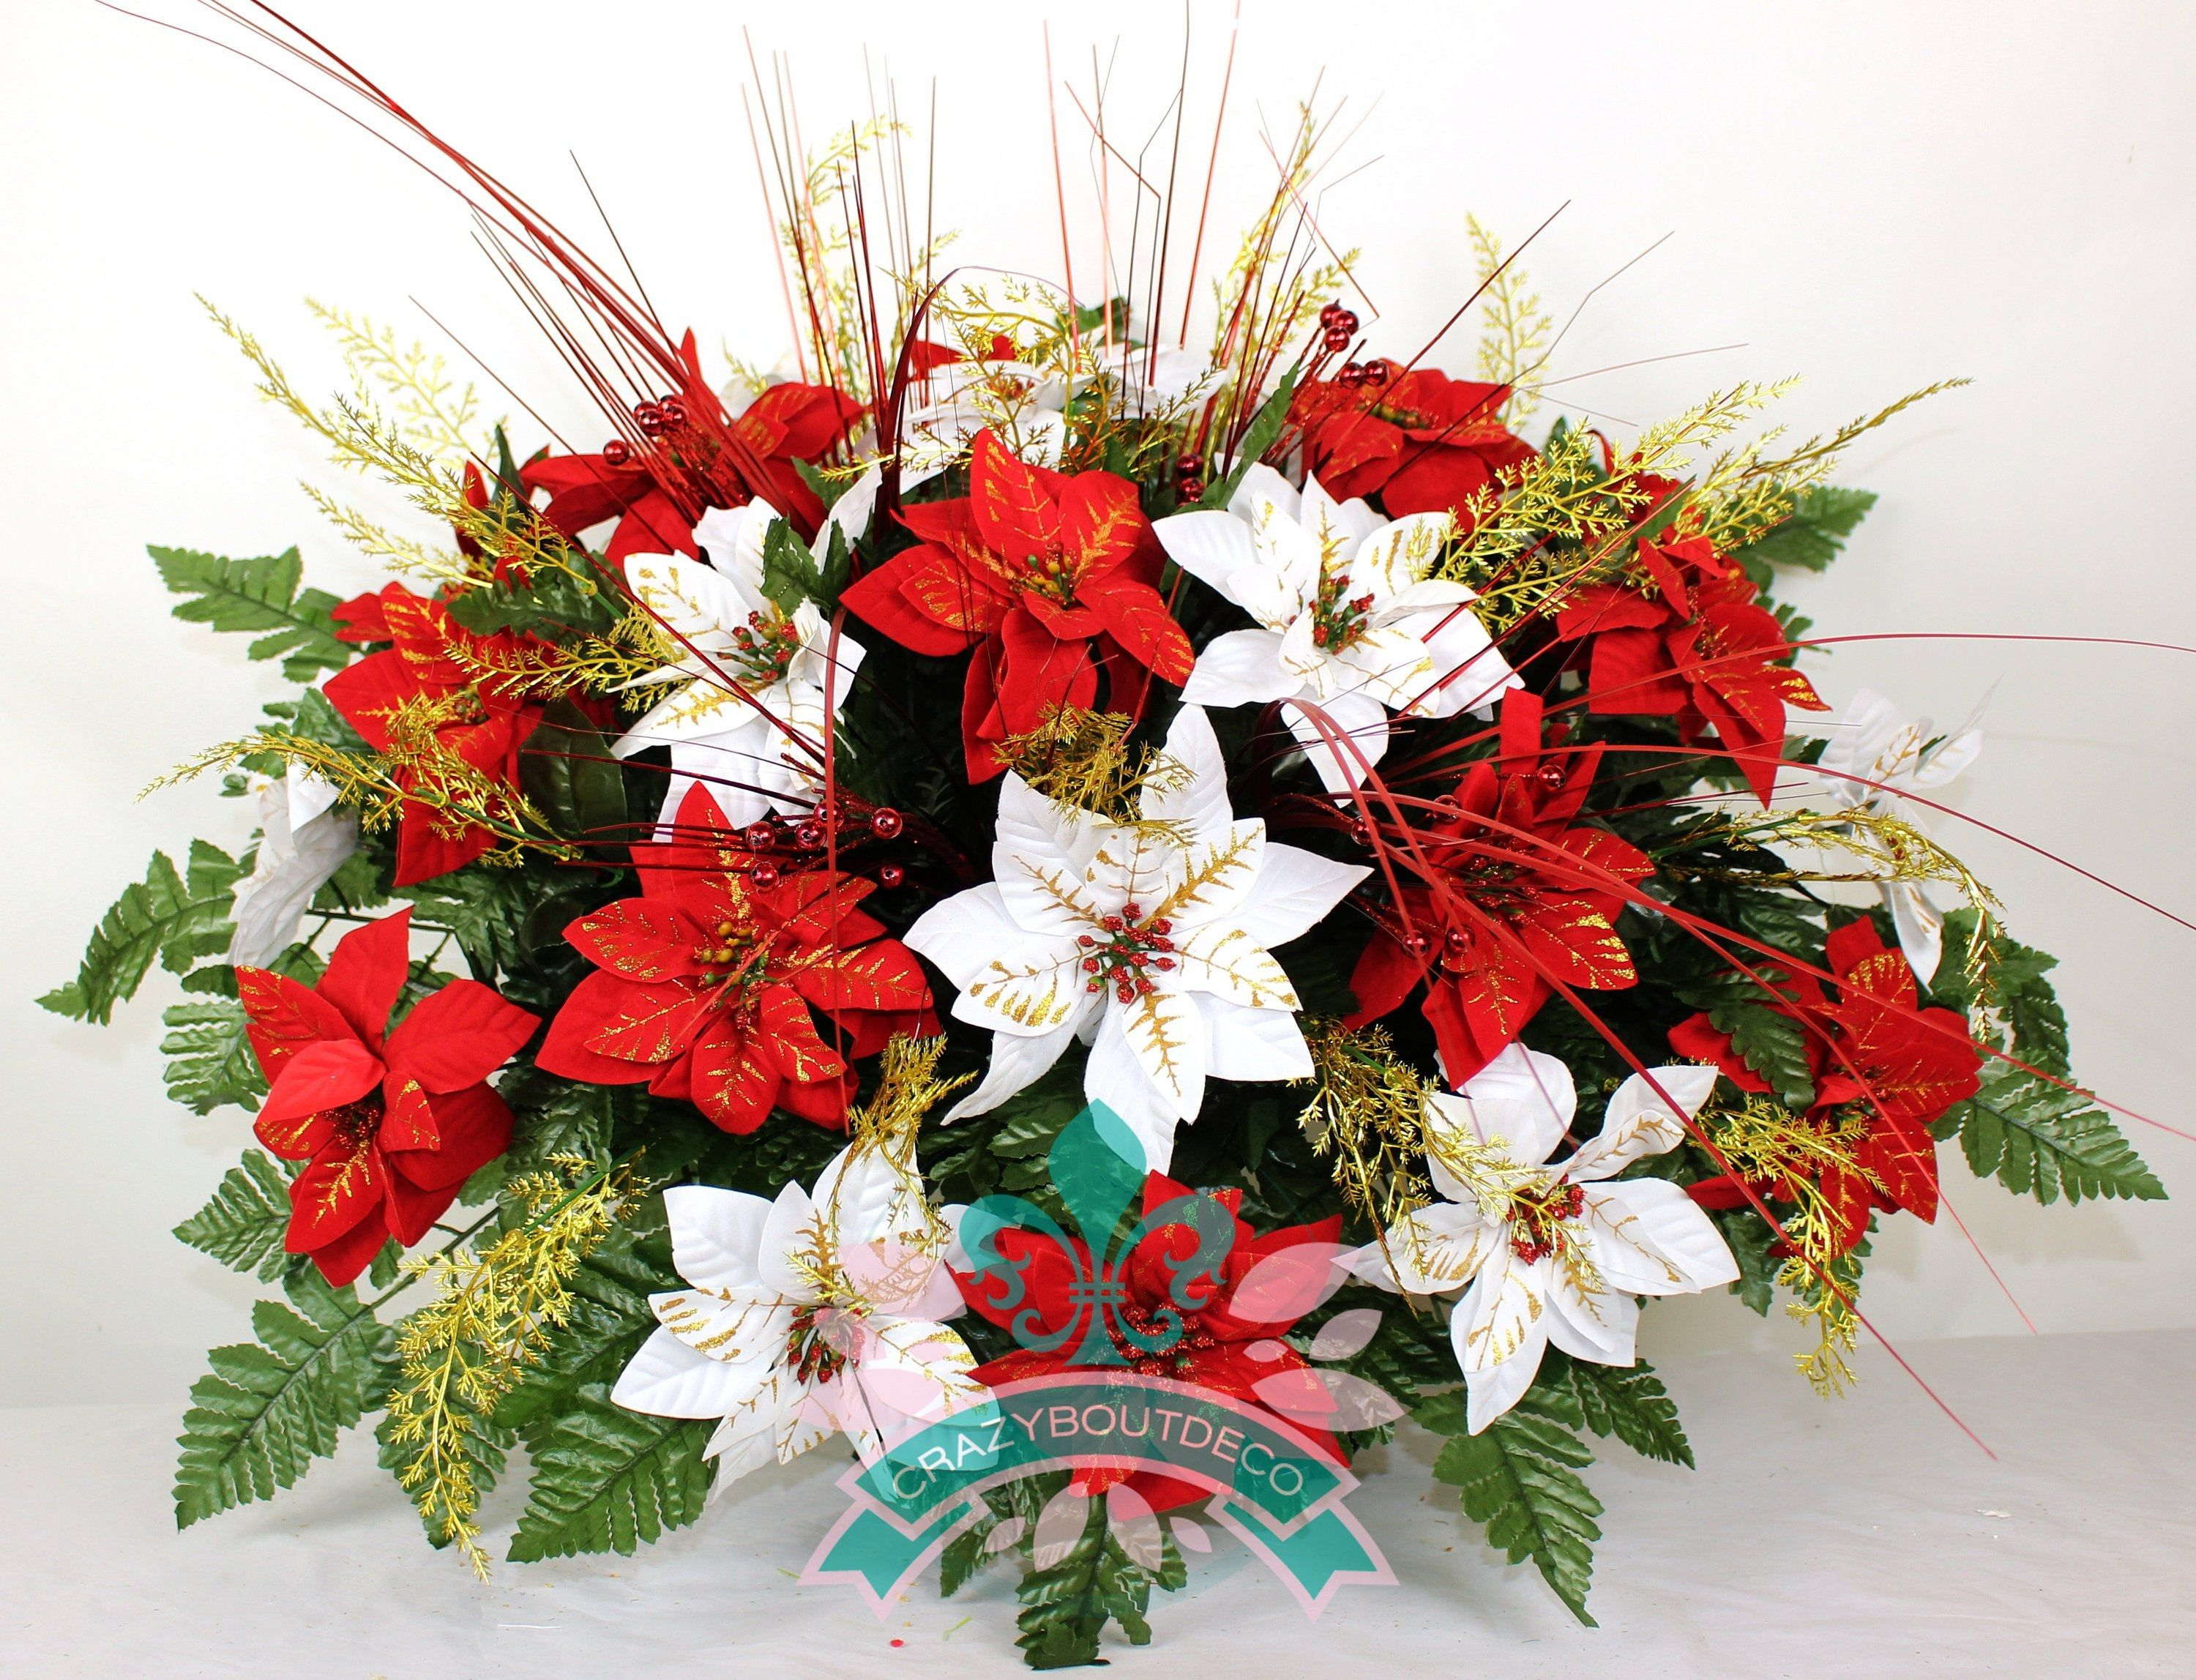 Xl Artificial Red And White Poinsettia S W Gold Sprays Cemetery Flower Headstone Saddle Grave Decoration Grave Decorations Cemetery Flowers Cemetery Decorations